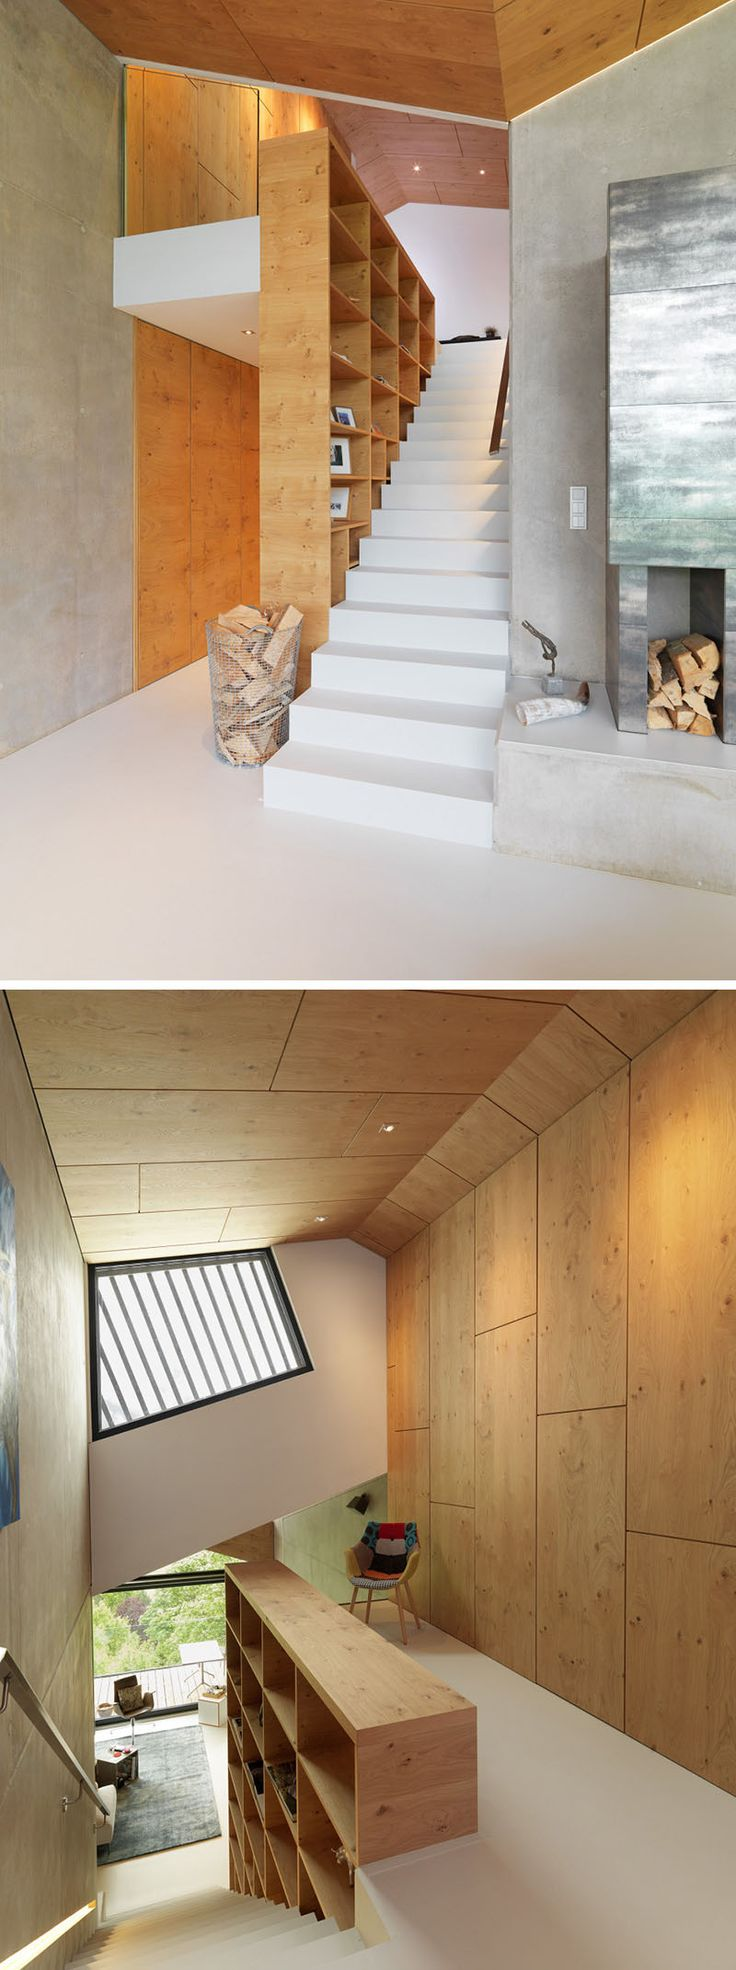 12 Inspiring Examples Of Staircases With Bookshelves   This staircase/bookshelf combo leads up to a spot perfect for reading.